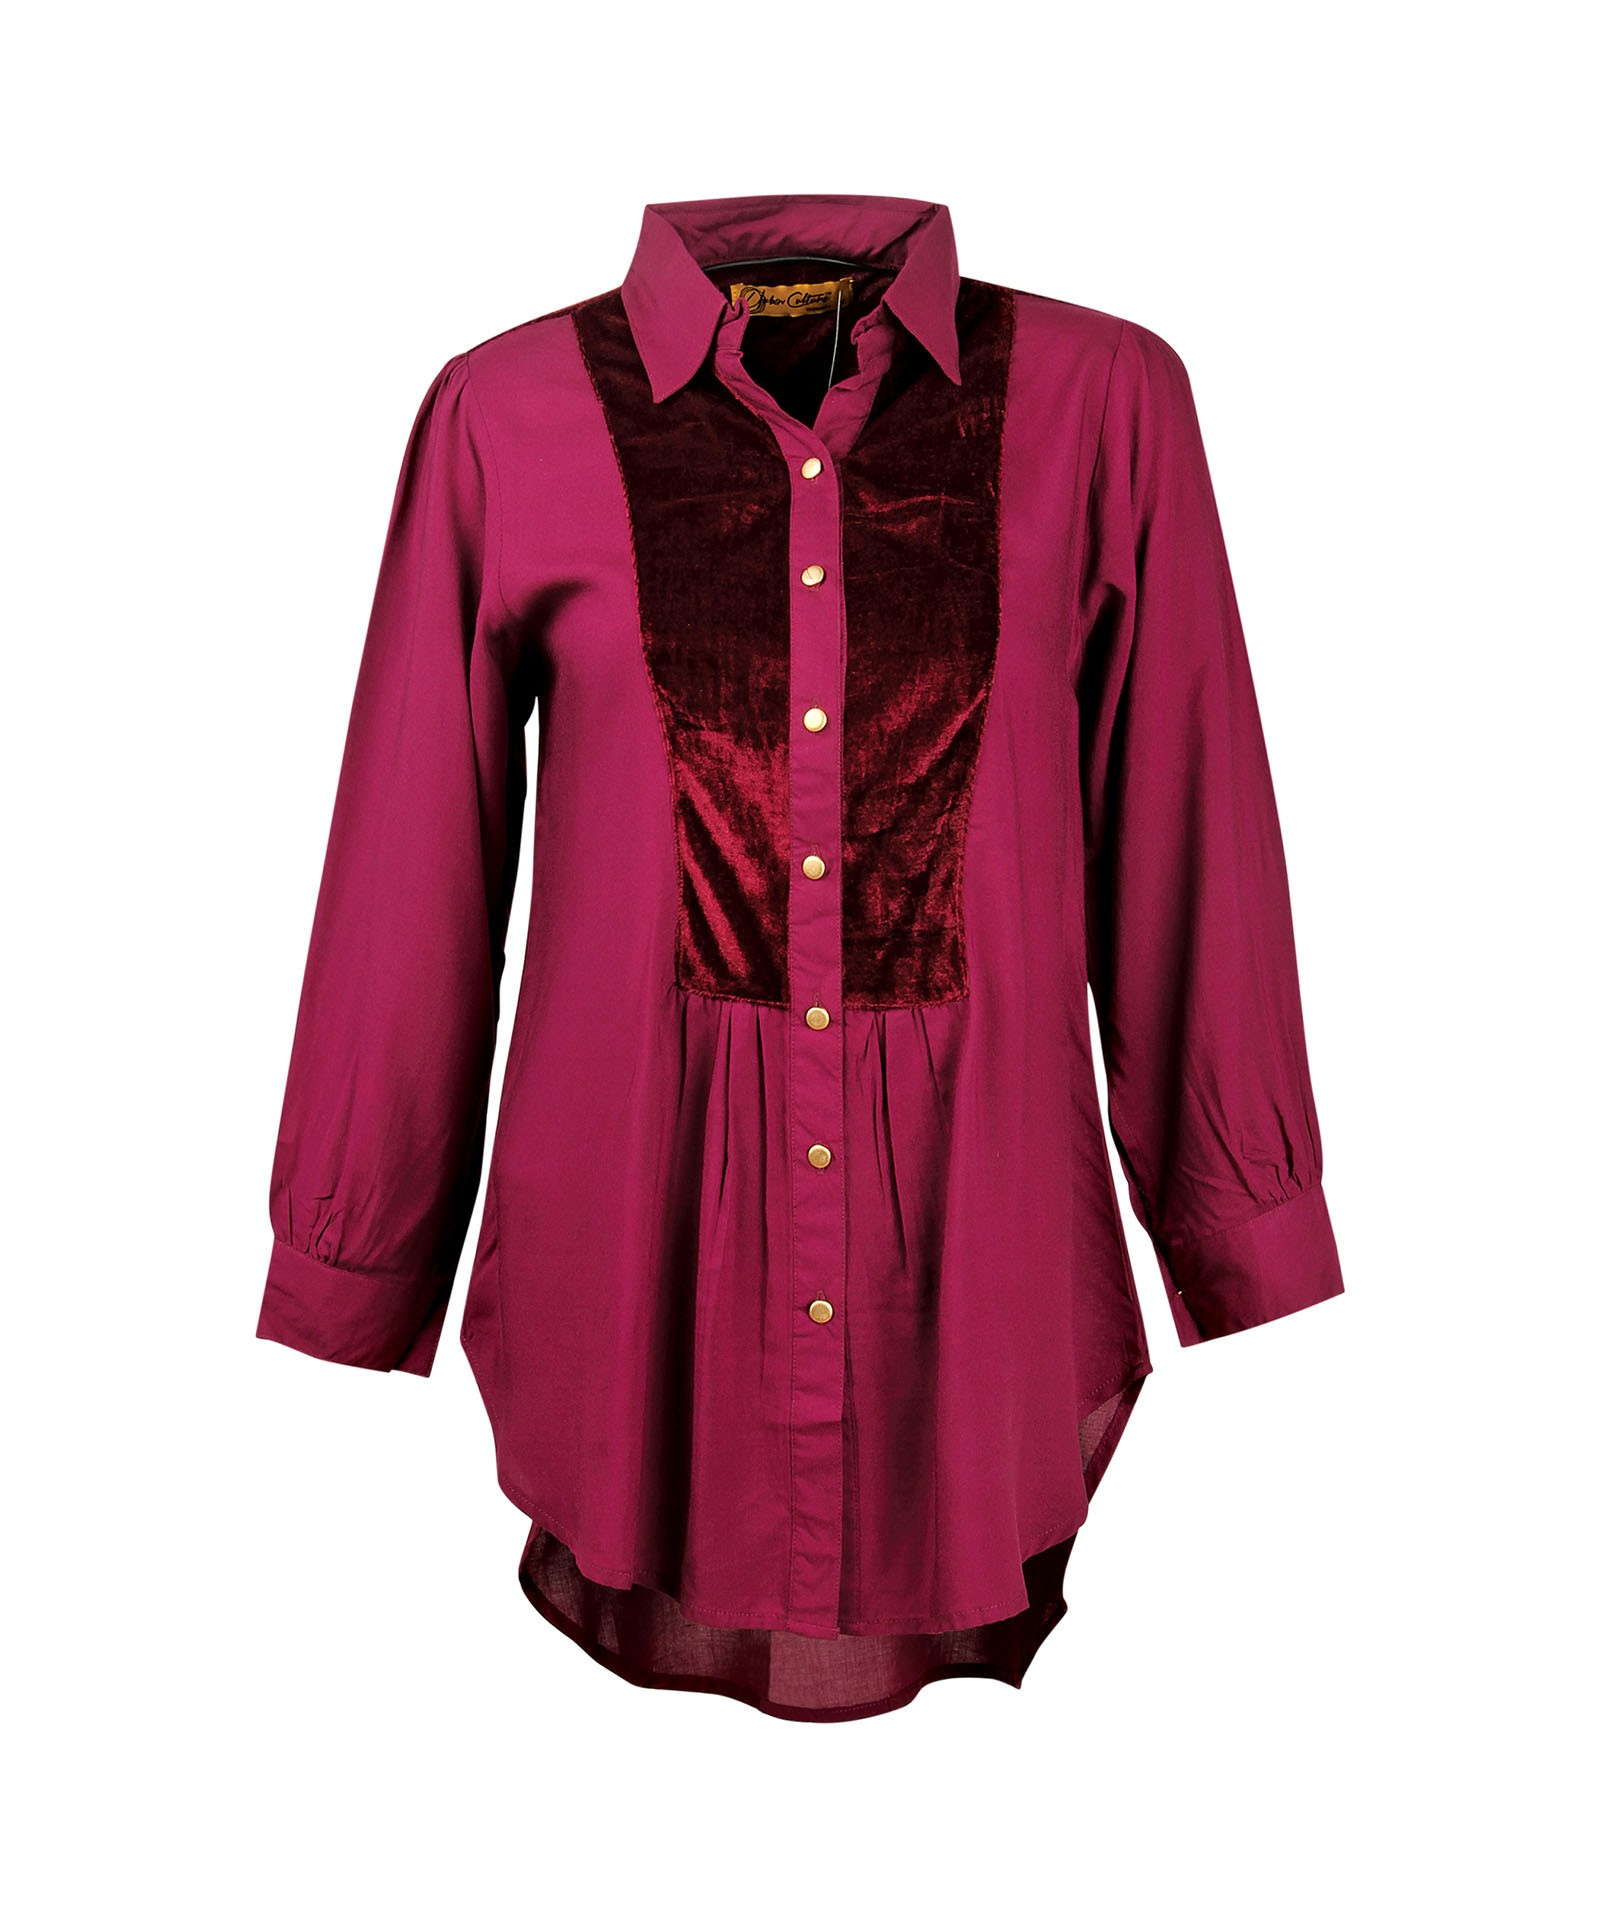 Urban-Culture-Shirts-Collection-2014-2015 (13)